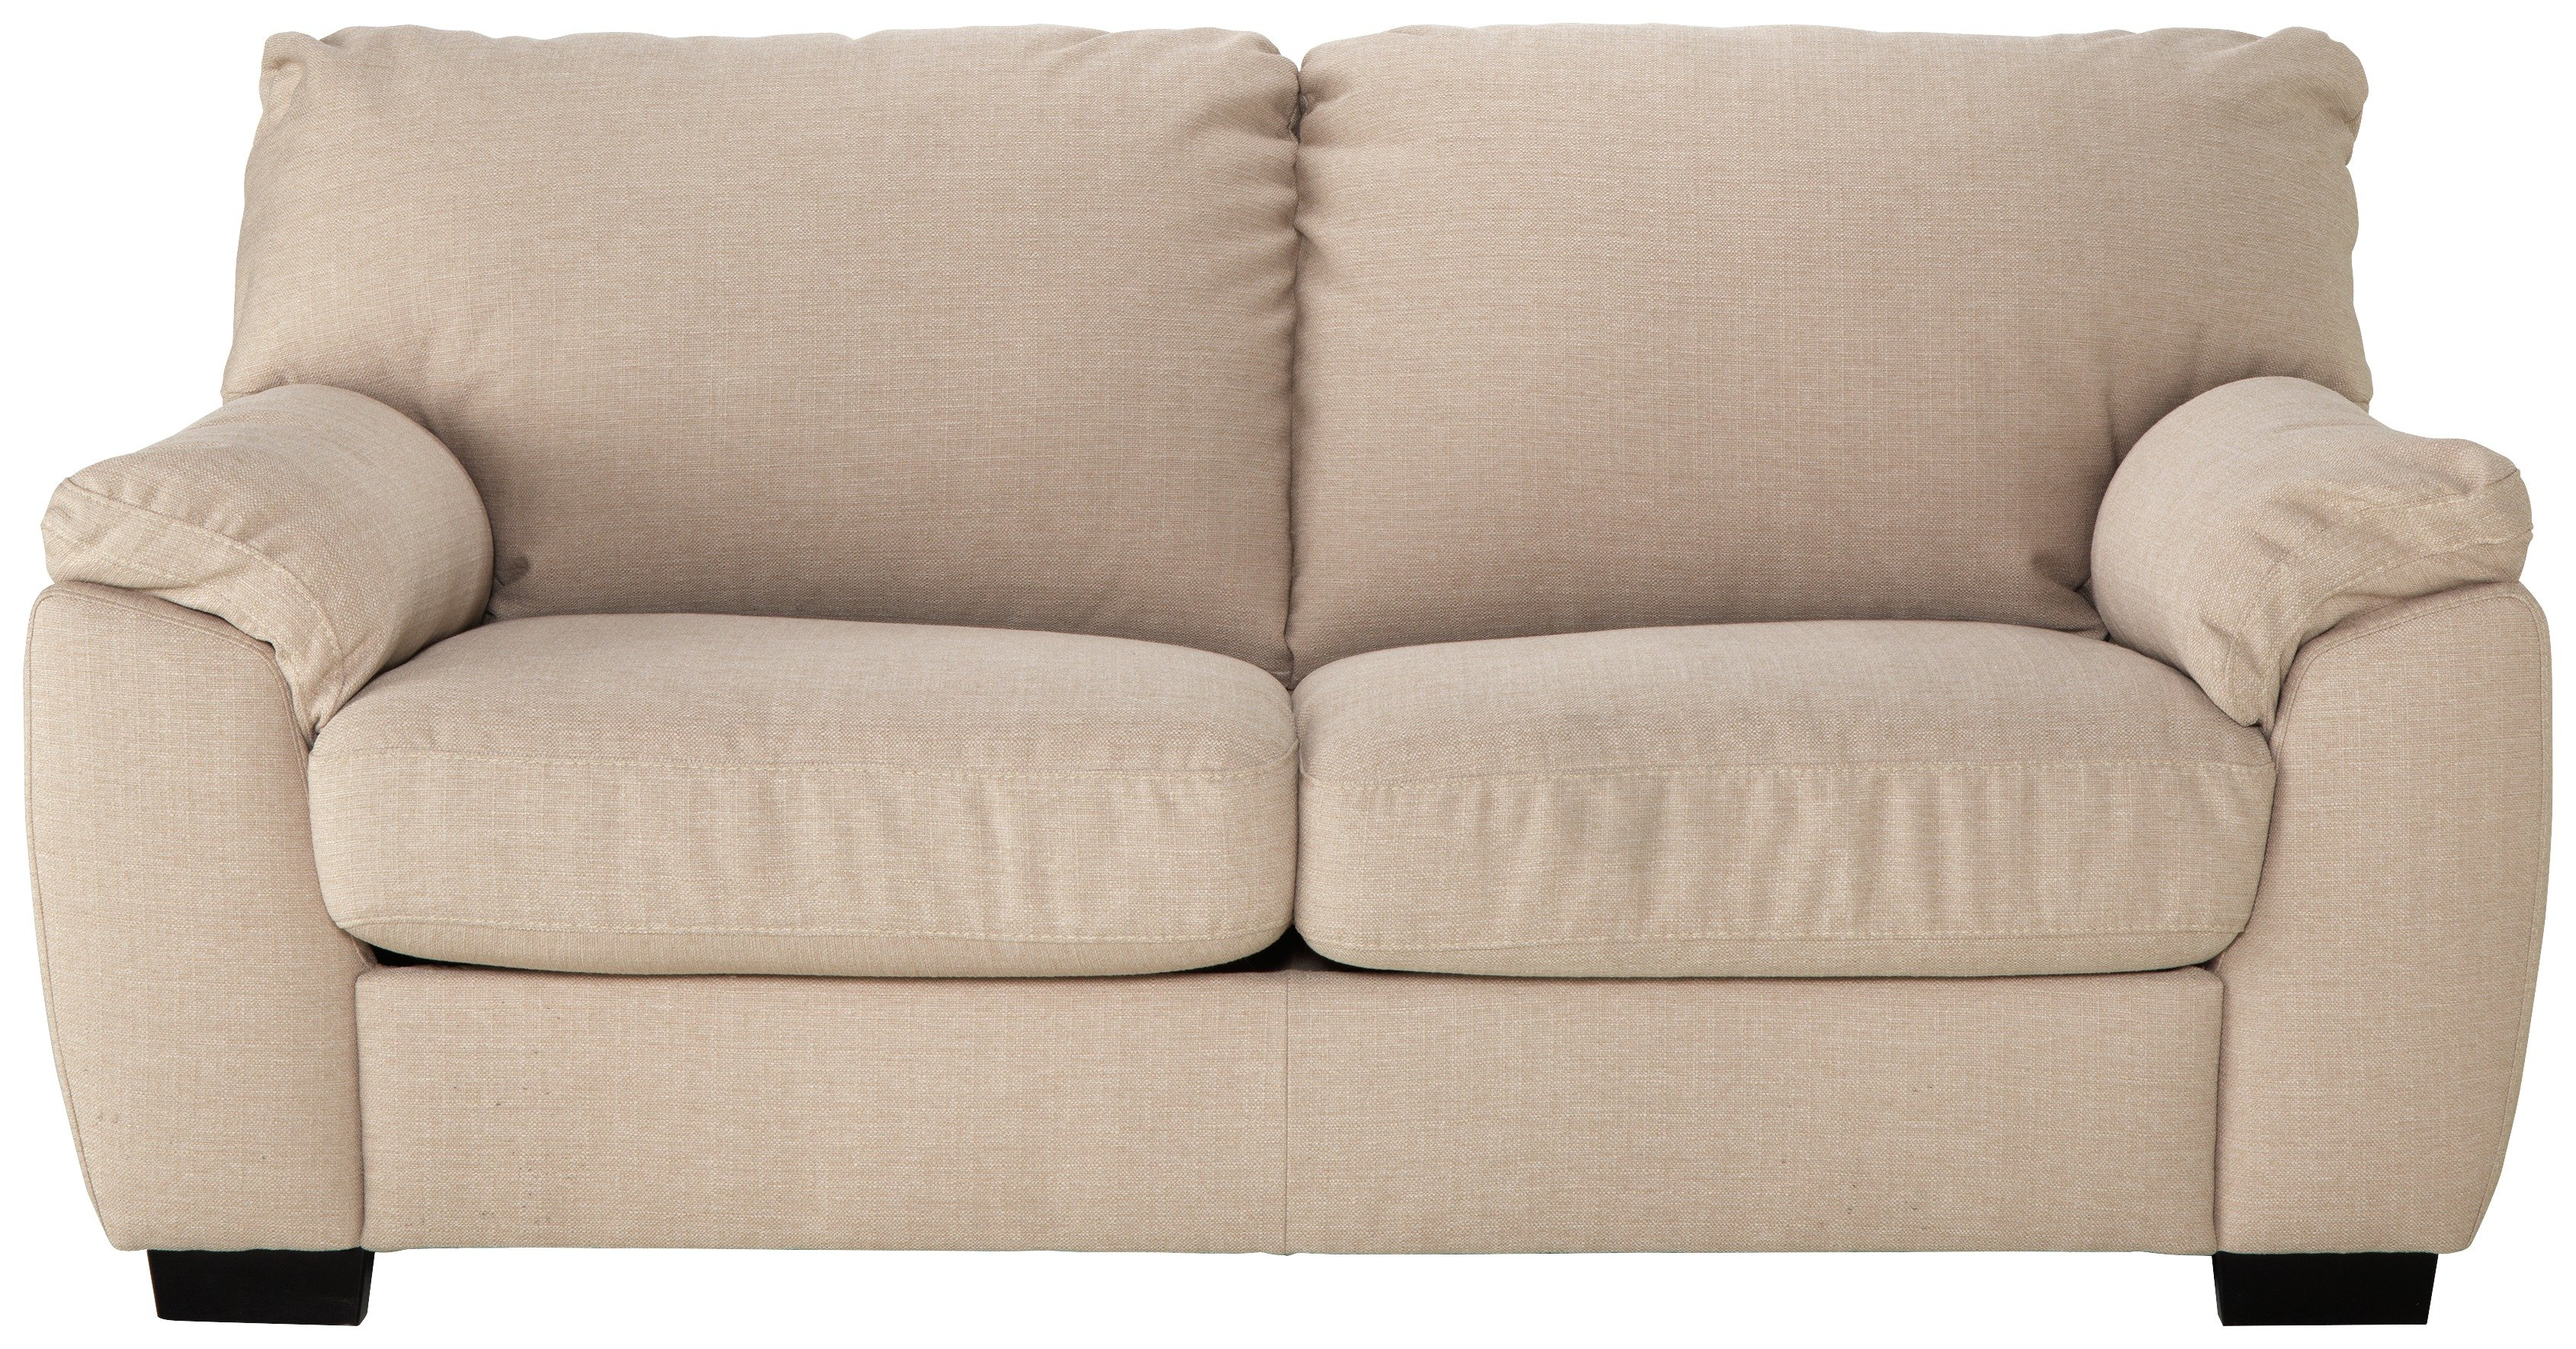 sofa beds argos co uk sectional sofas like pottery barn buy collection milano 2 seater fabric bed - beige ...